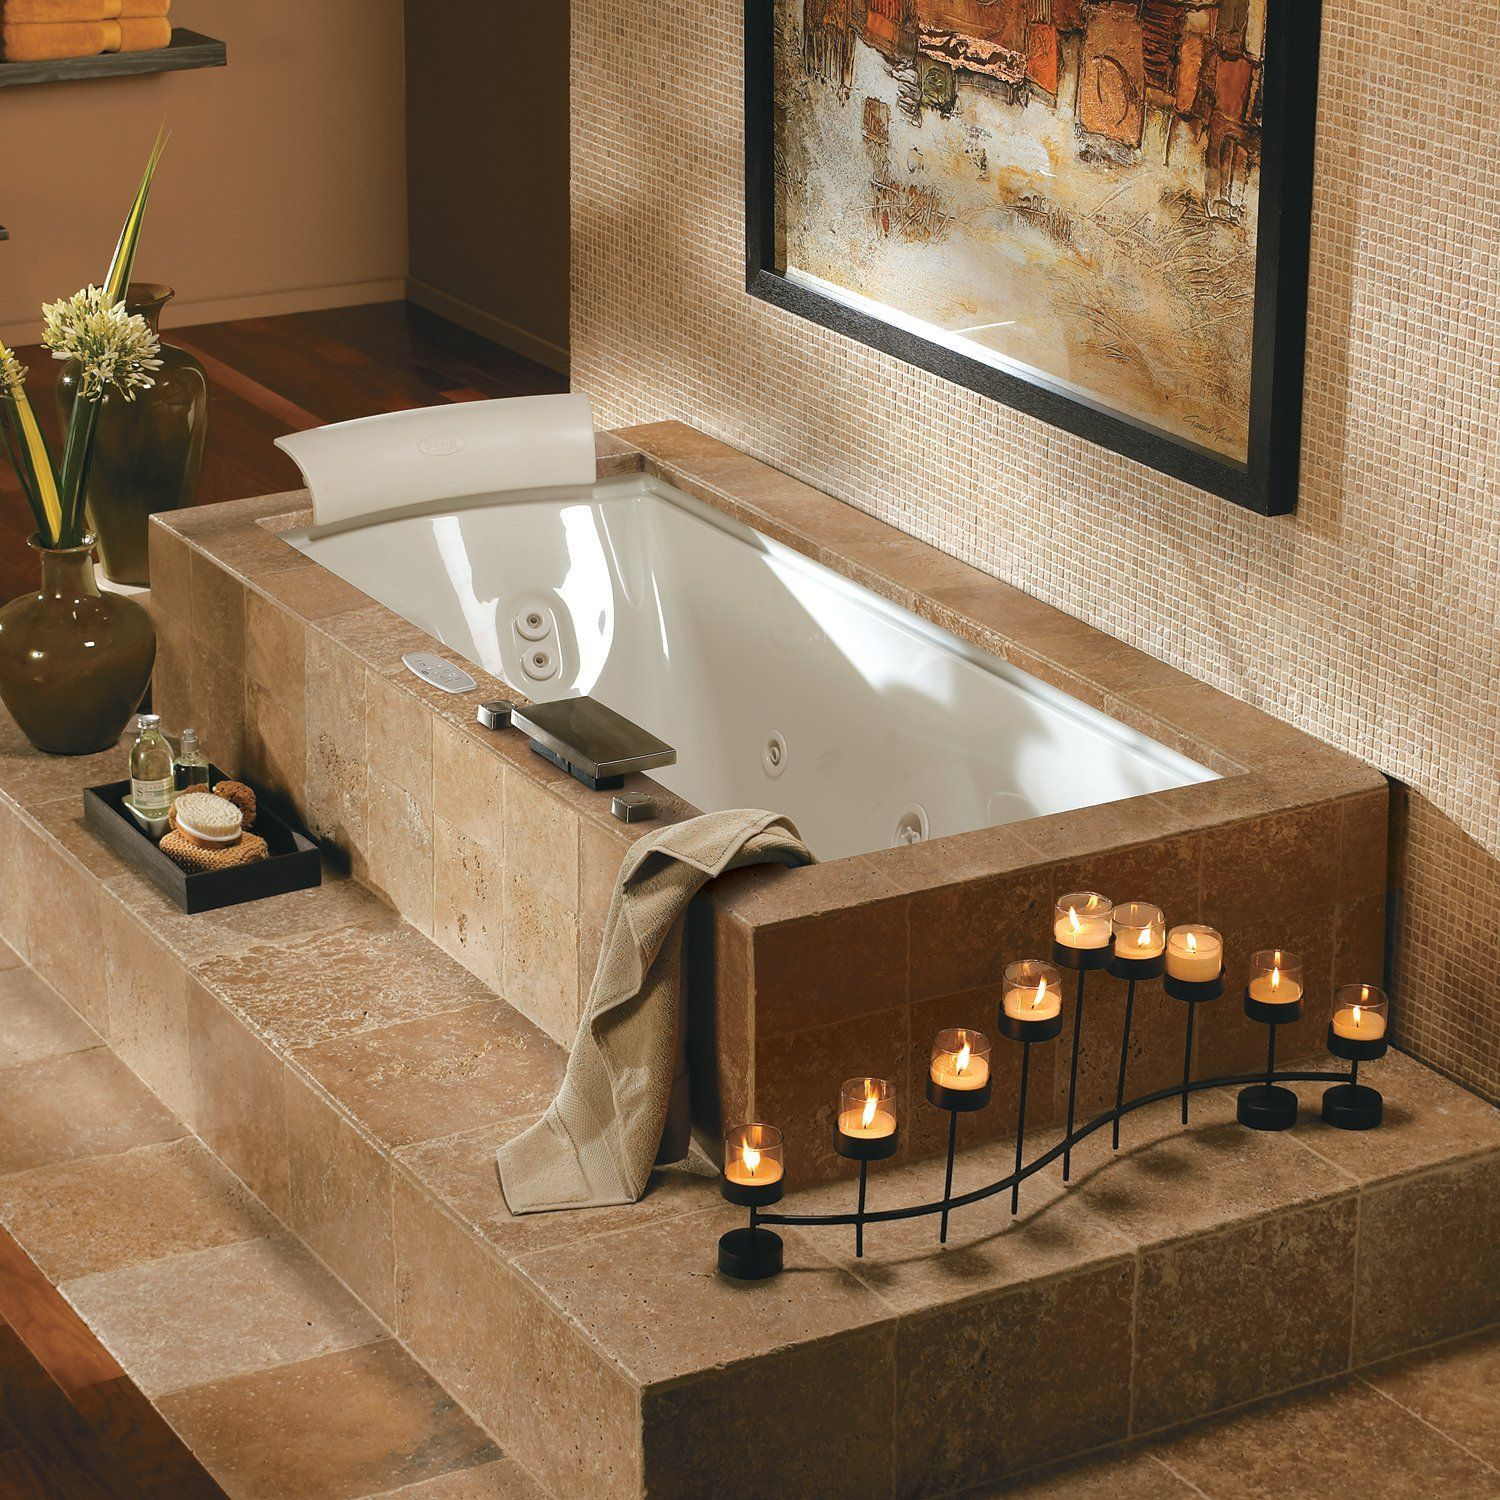 jacuzzi whirlpool fuz7236w fuzion undermount drop in tub at atg ...